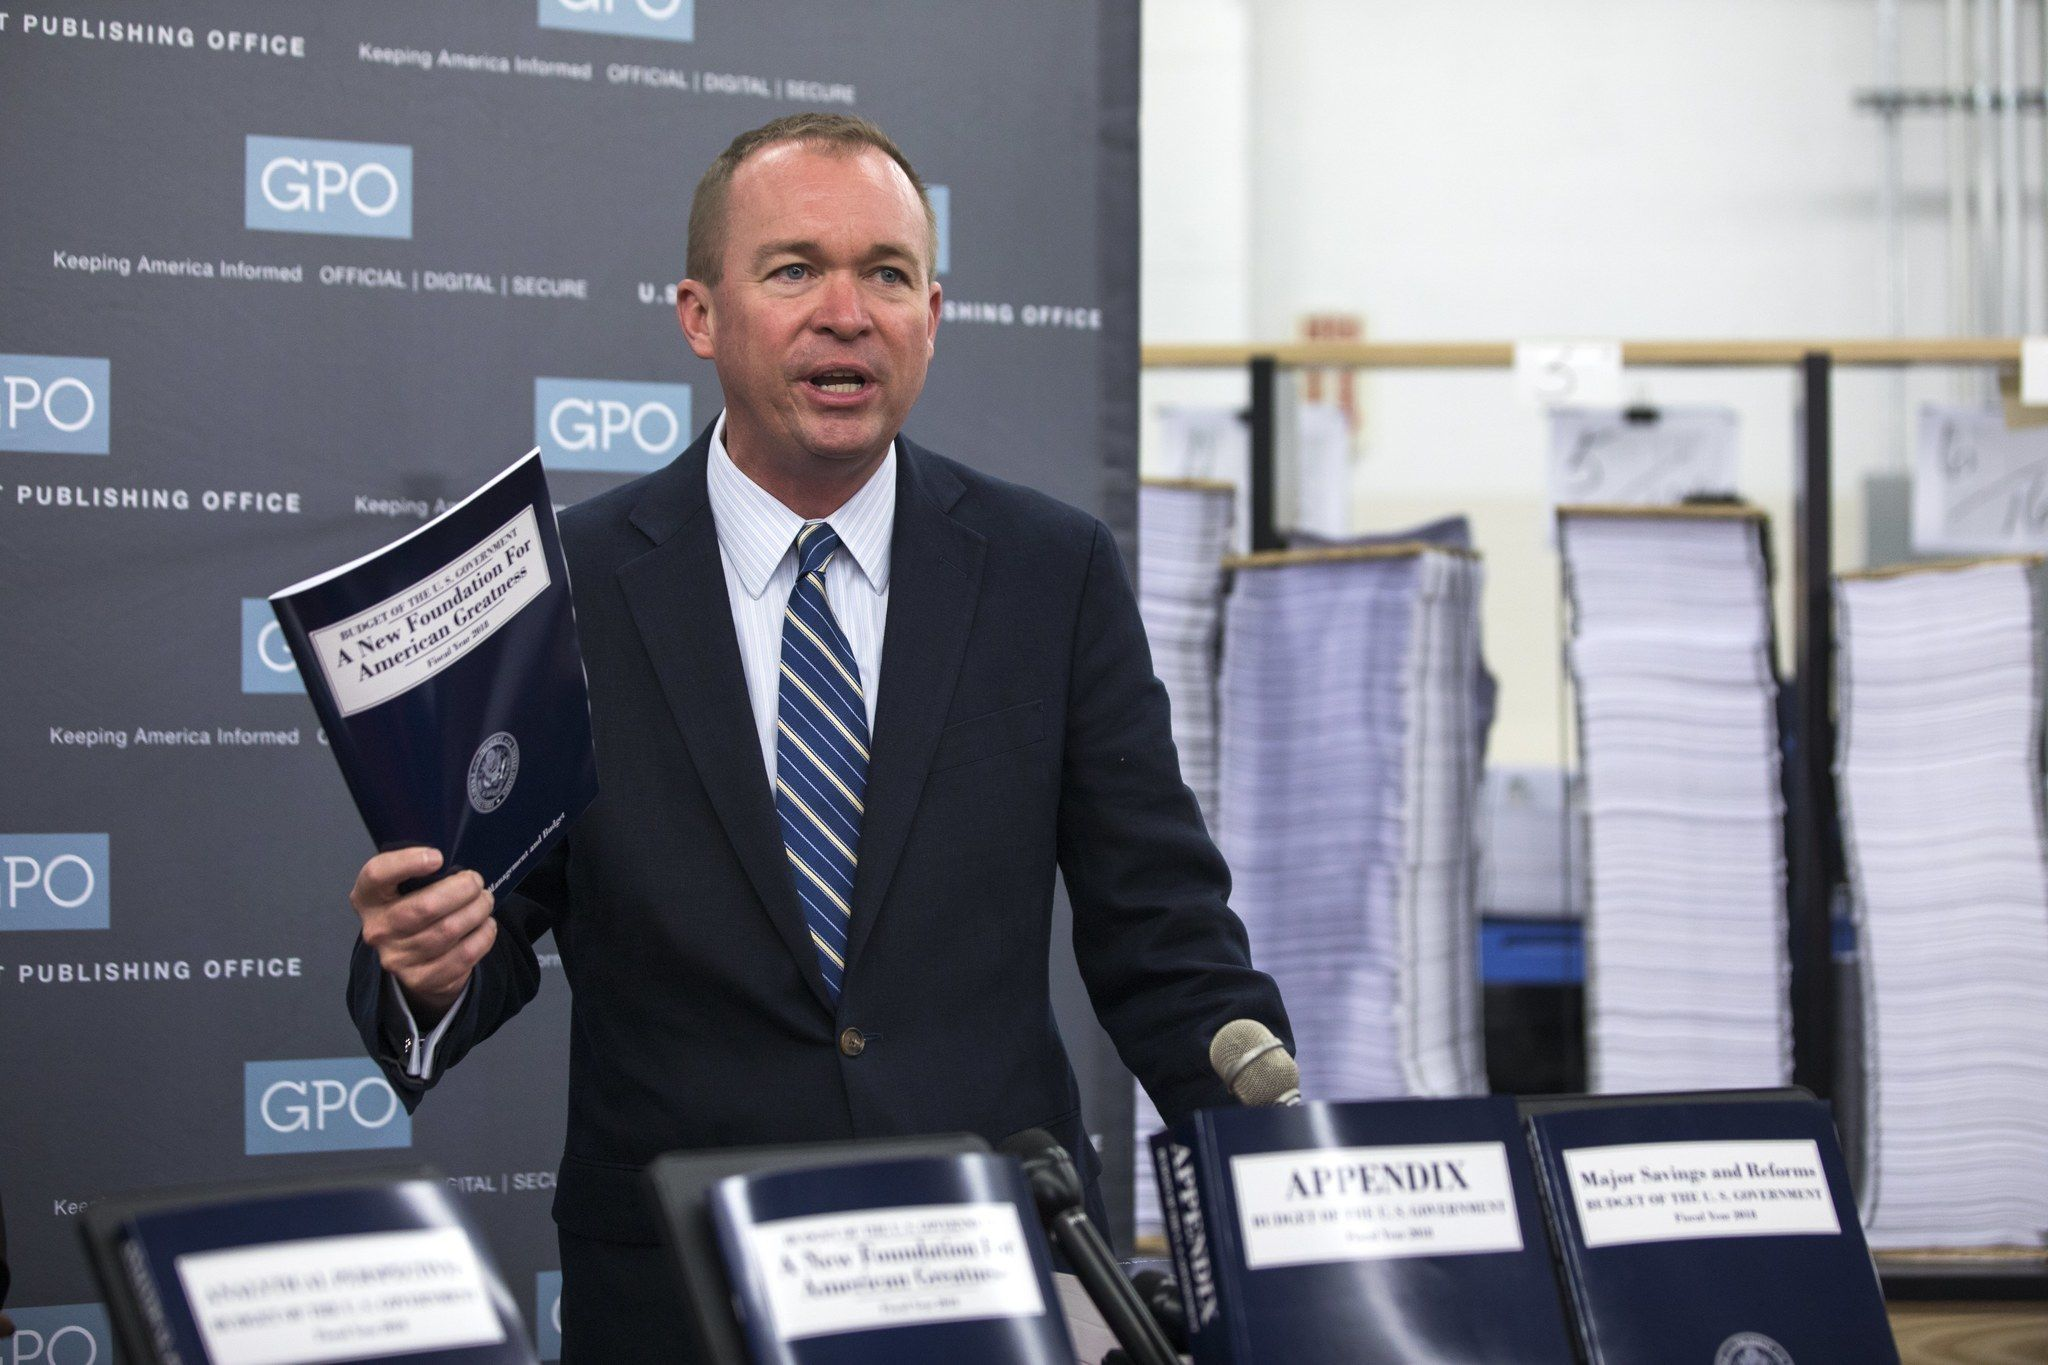 Trump S Budget Continues His Deceitful Attack On The Disabled